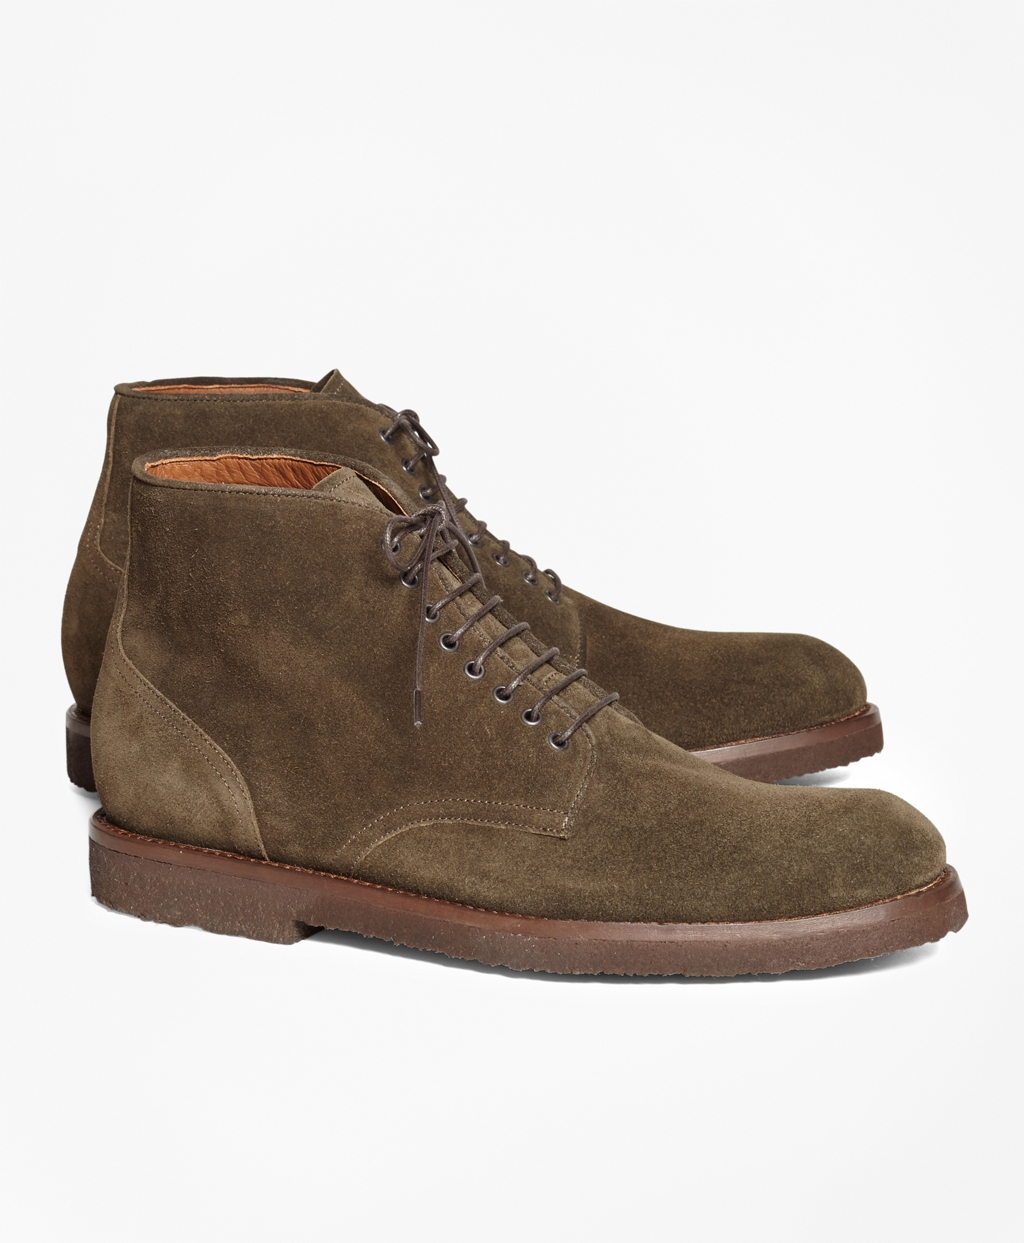 Brooks Brothers Men's Suede Boots